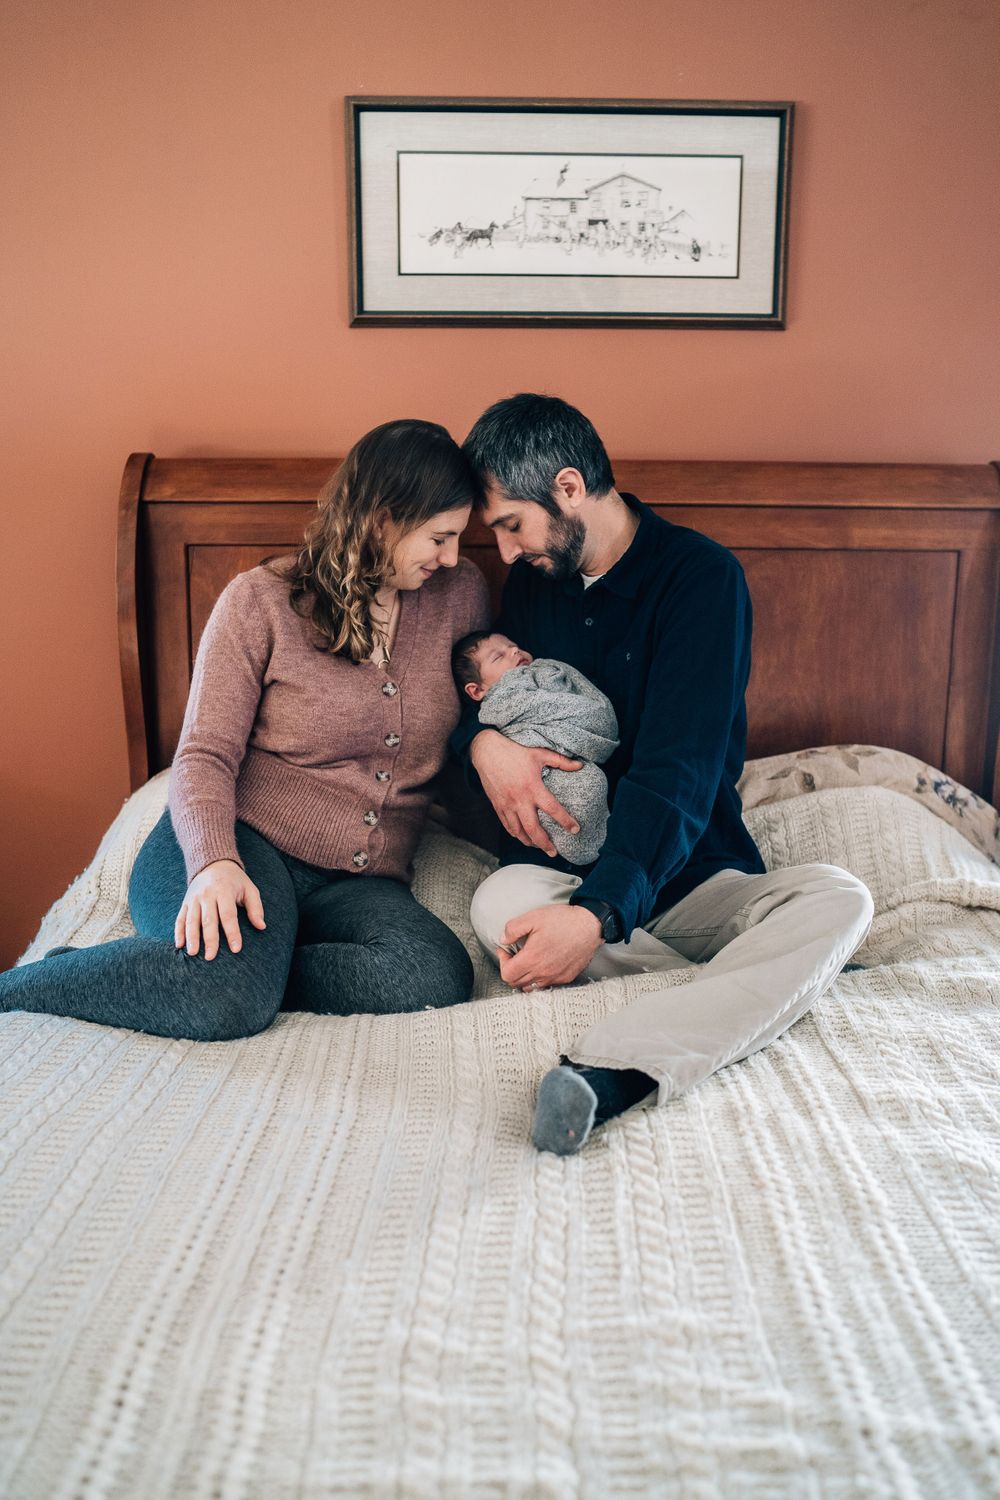 parents snuggling their baby in their bed